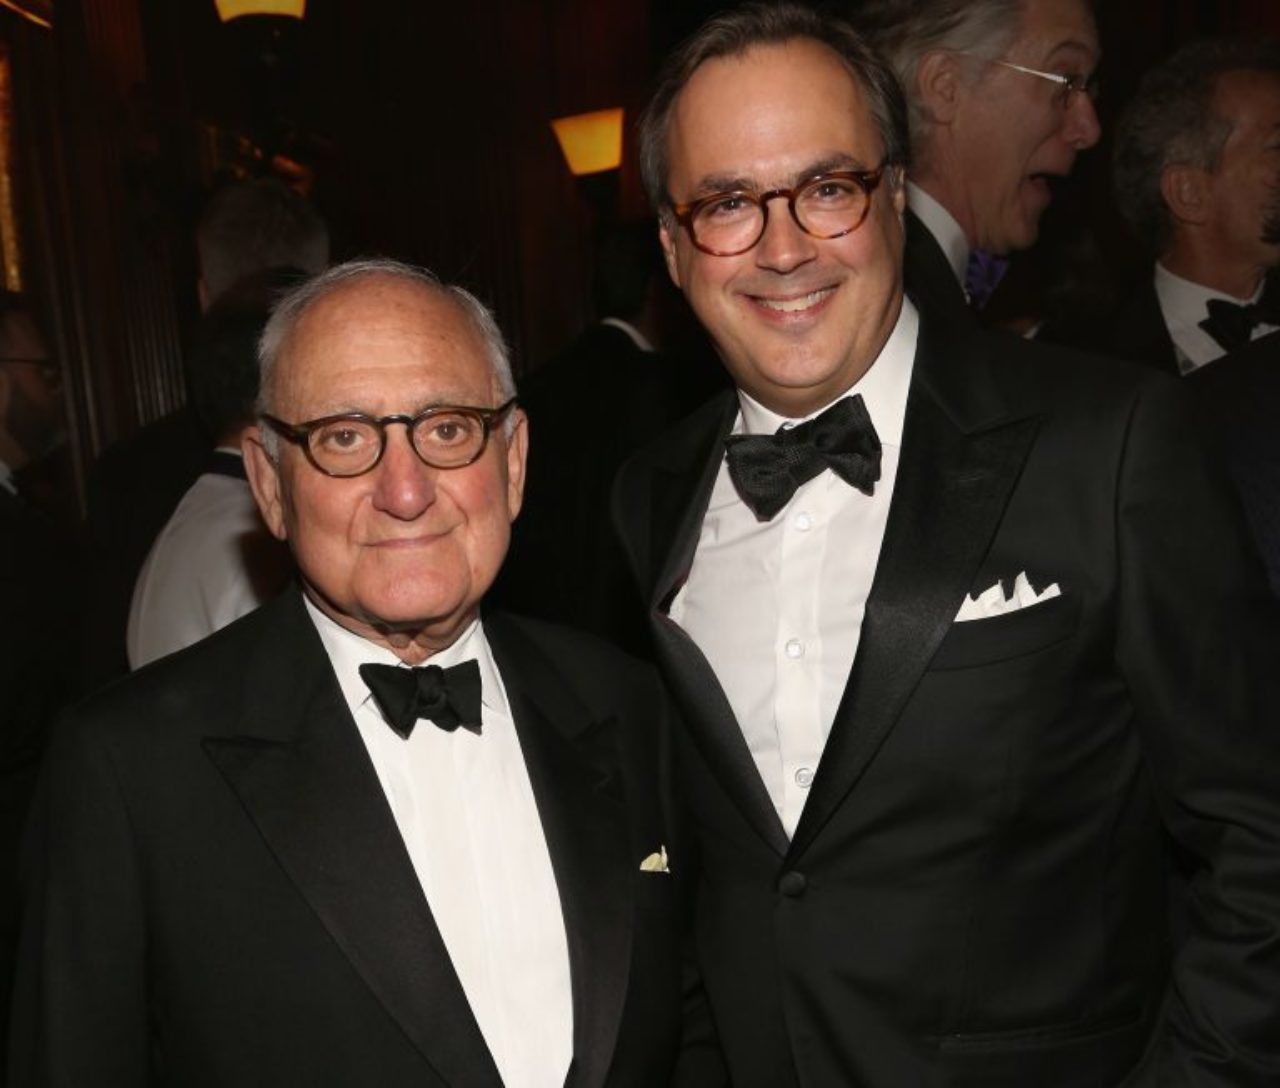 Robert A. M. Stern and Gilbert P. Schafer III